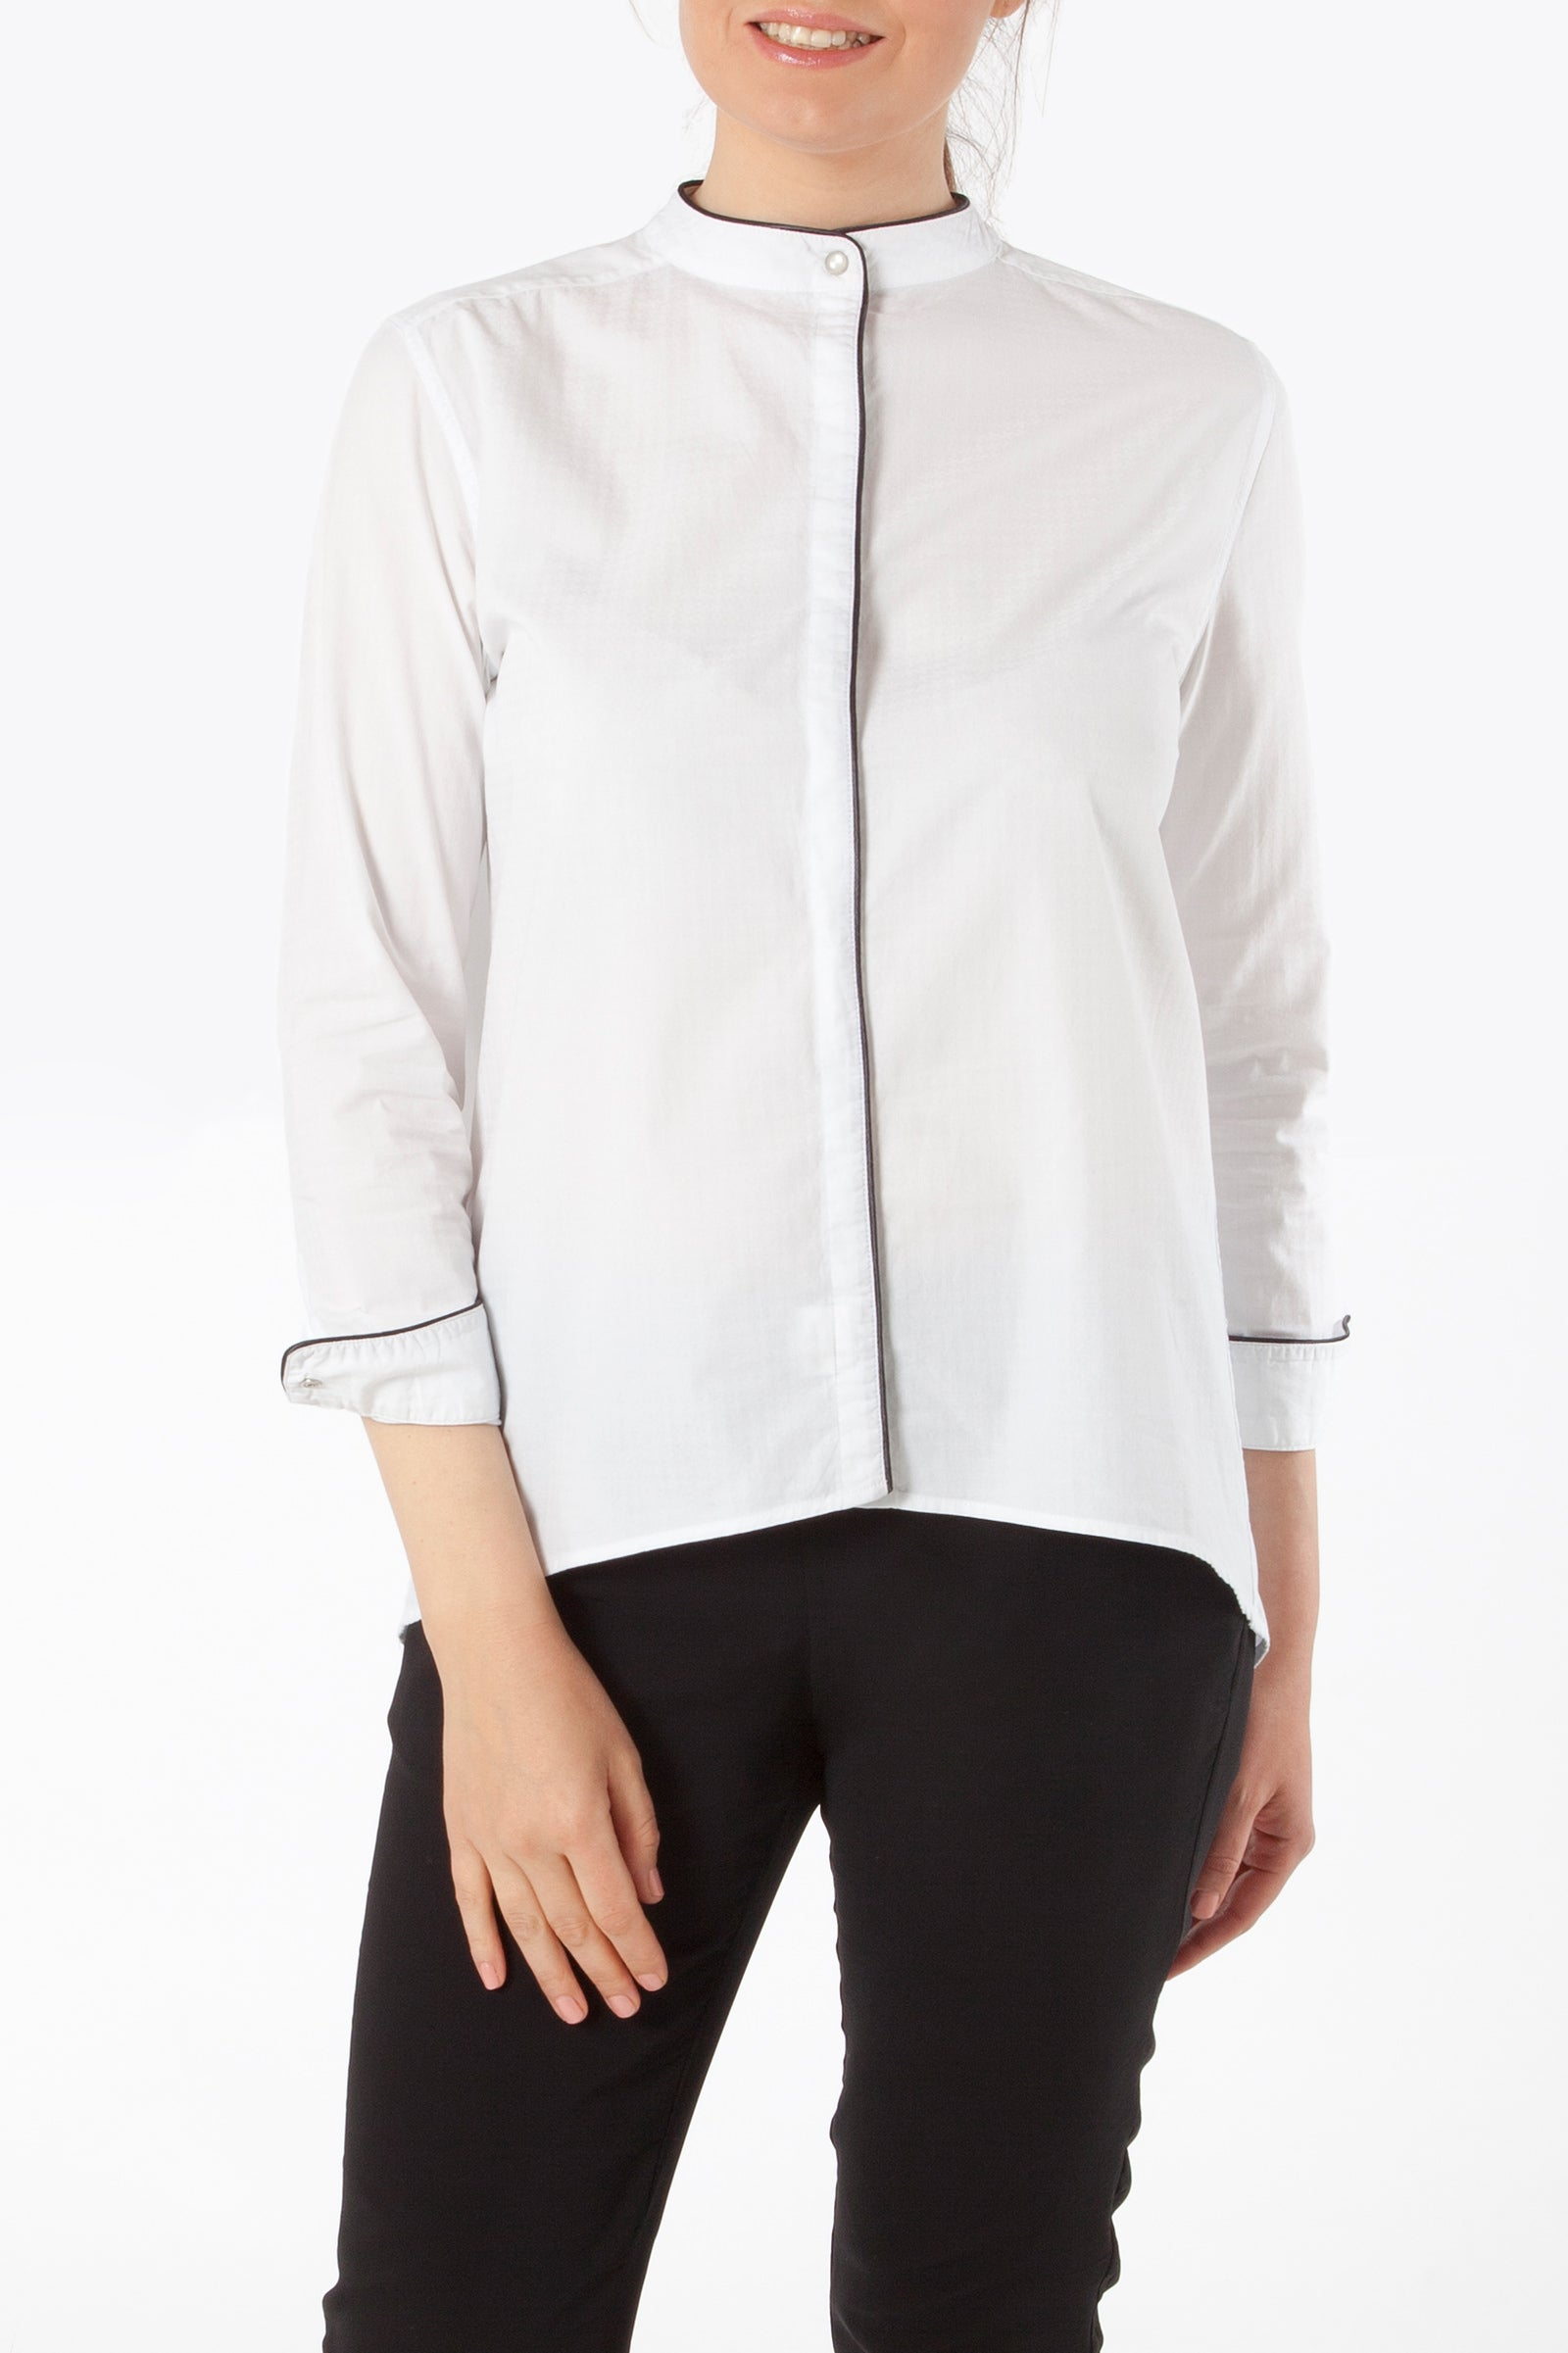 gaia button down shirt - nursing top - white striped